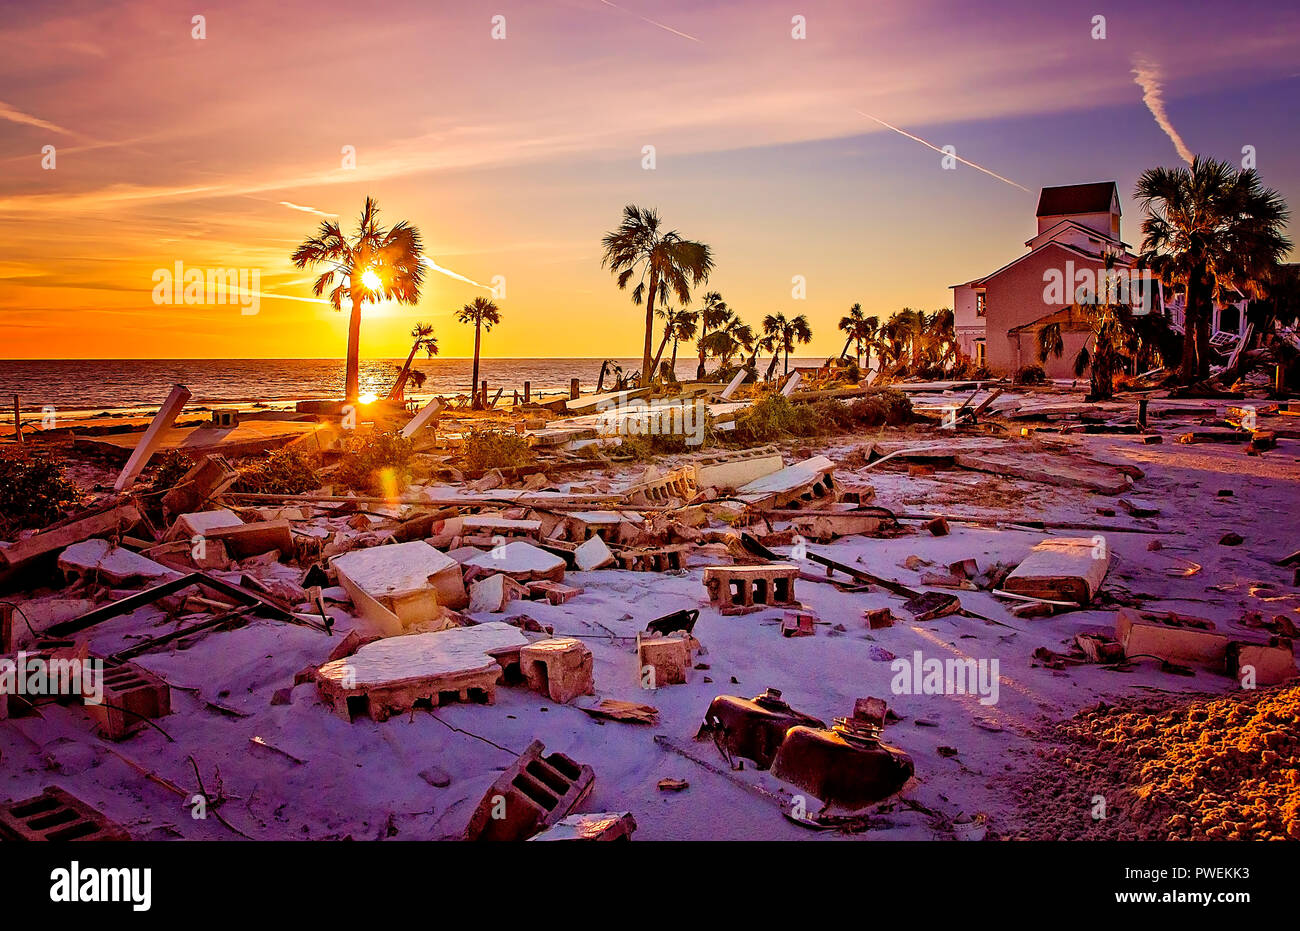 Beach homes lie in ruins after Hurricane Michael, Oct. 12, 2018, in Mexico Beach, Florida. Stock Photo